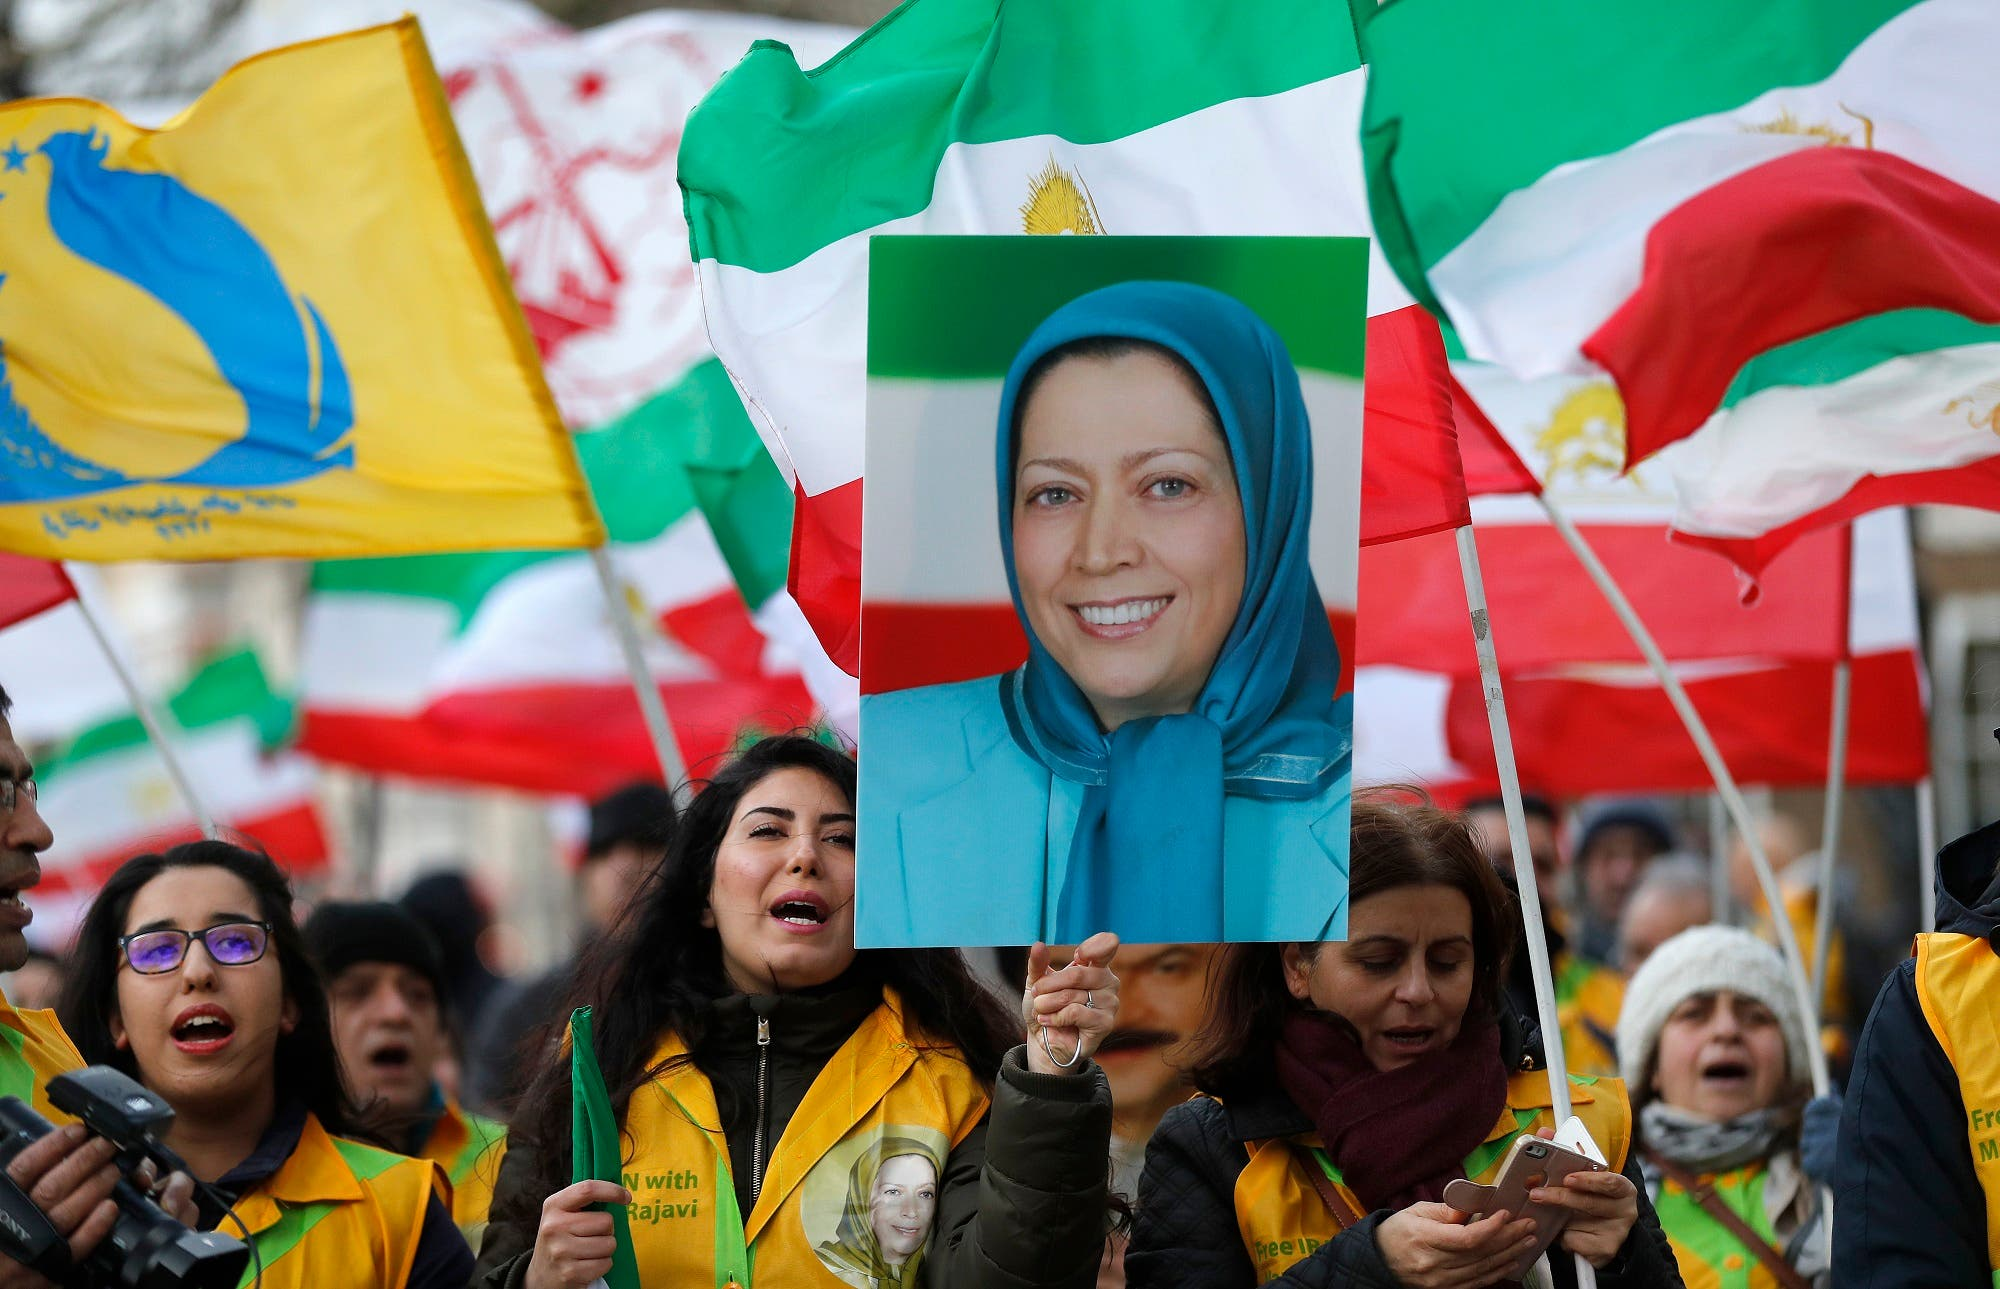 The Anglo-Iranian communities, supporters of Iran's democratic opposition, the National Council of Resistance of Iran and main organised opposition movement PMOI, hold a rally in London on Jan. 4, 2018. (AP)